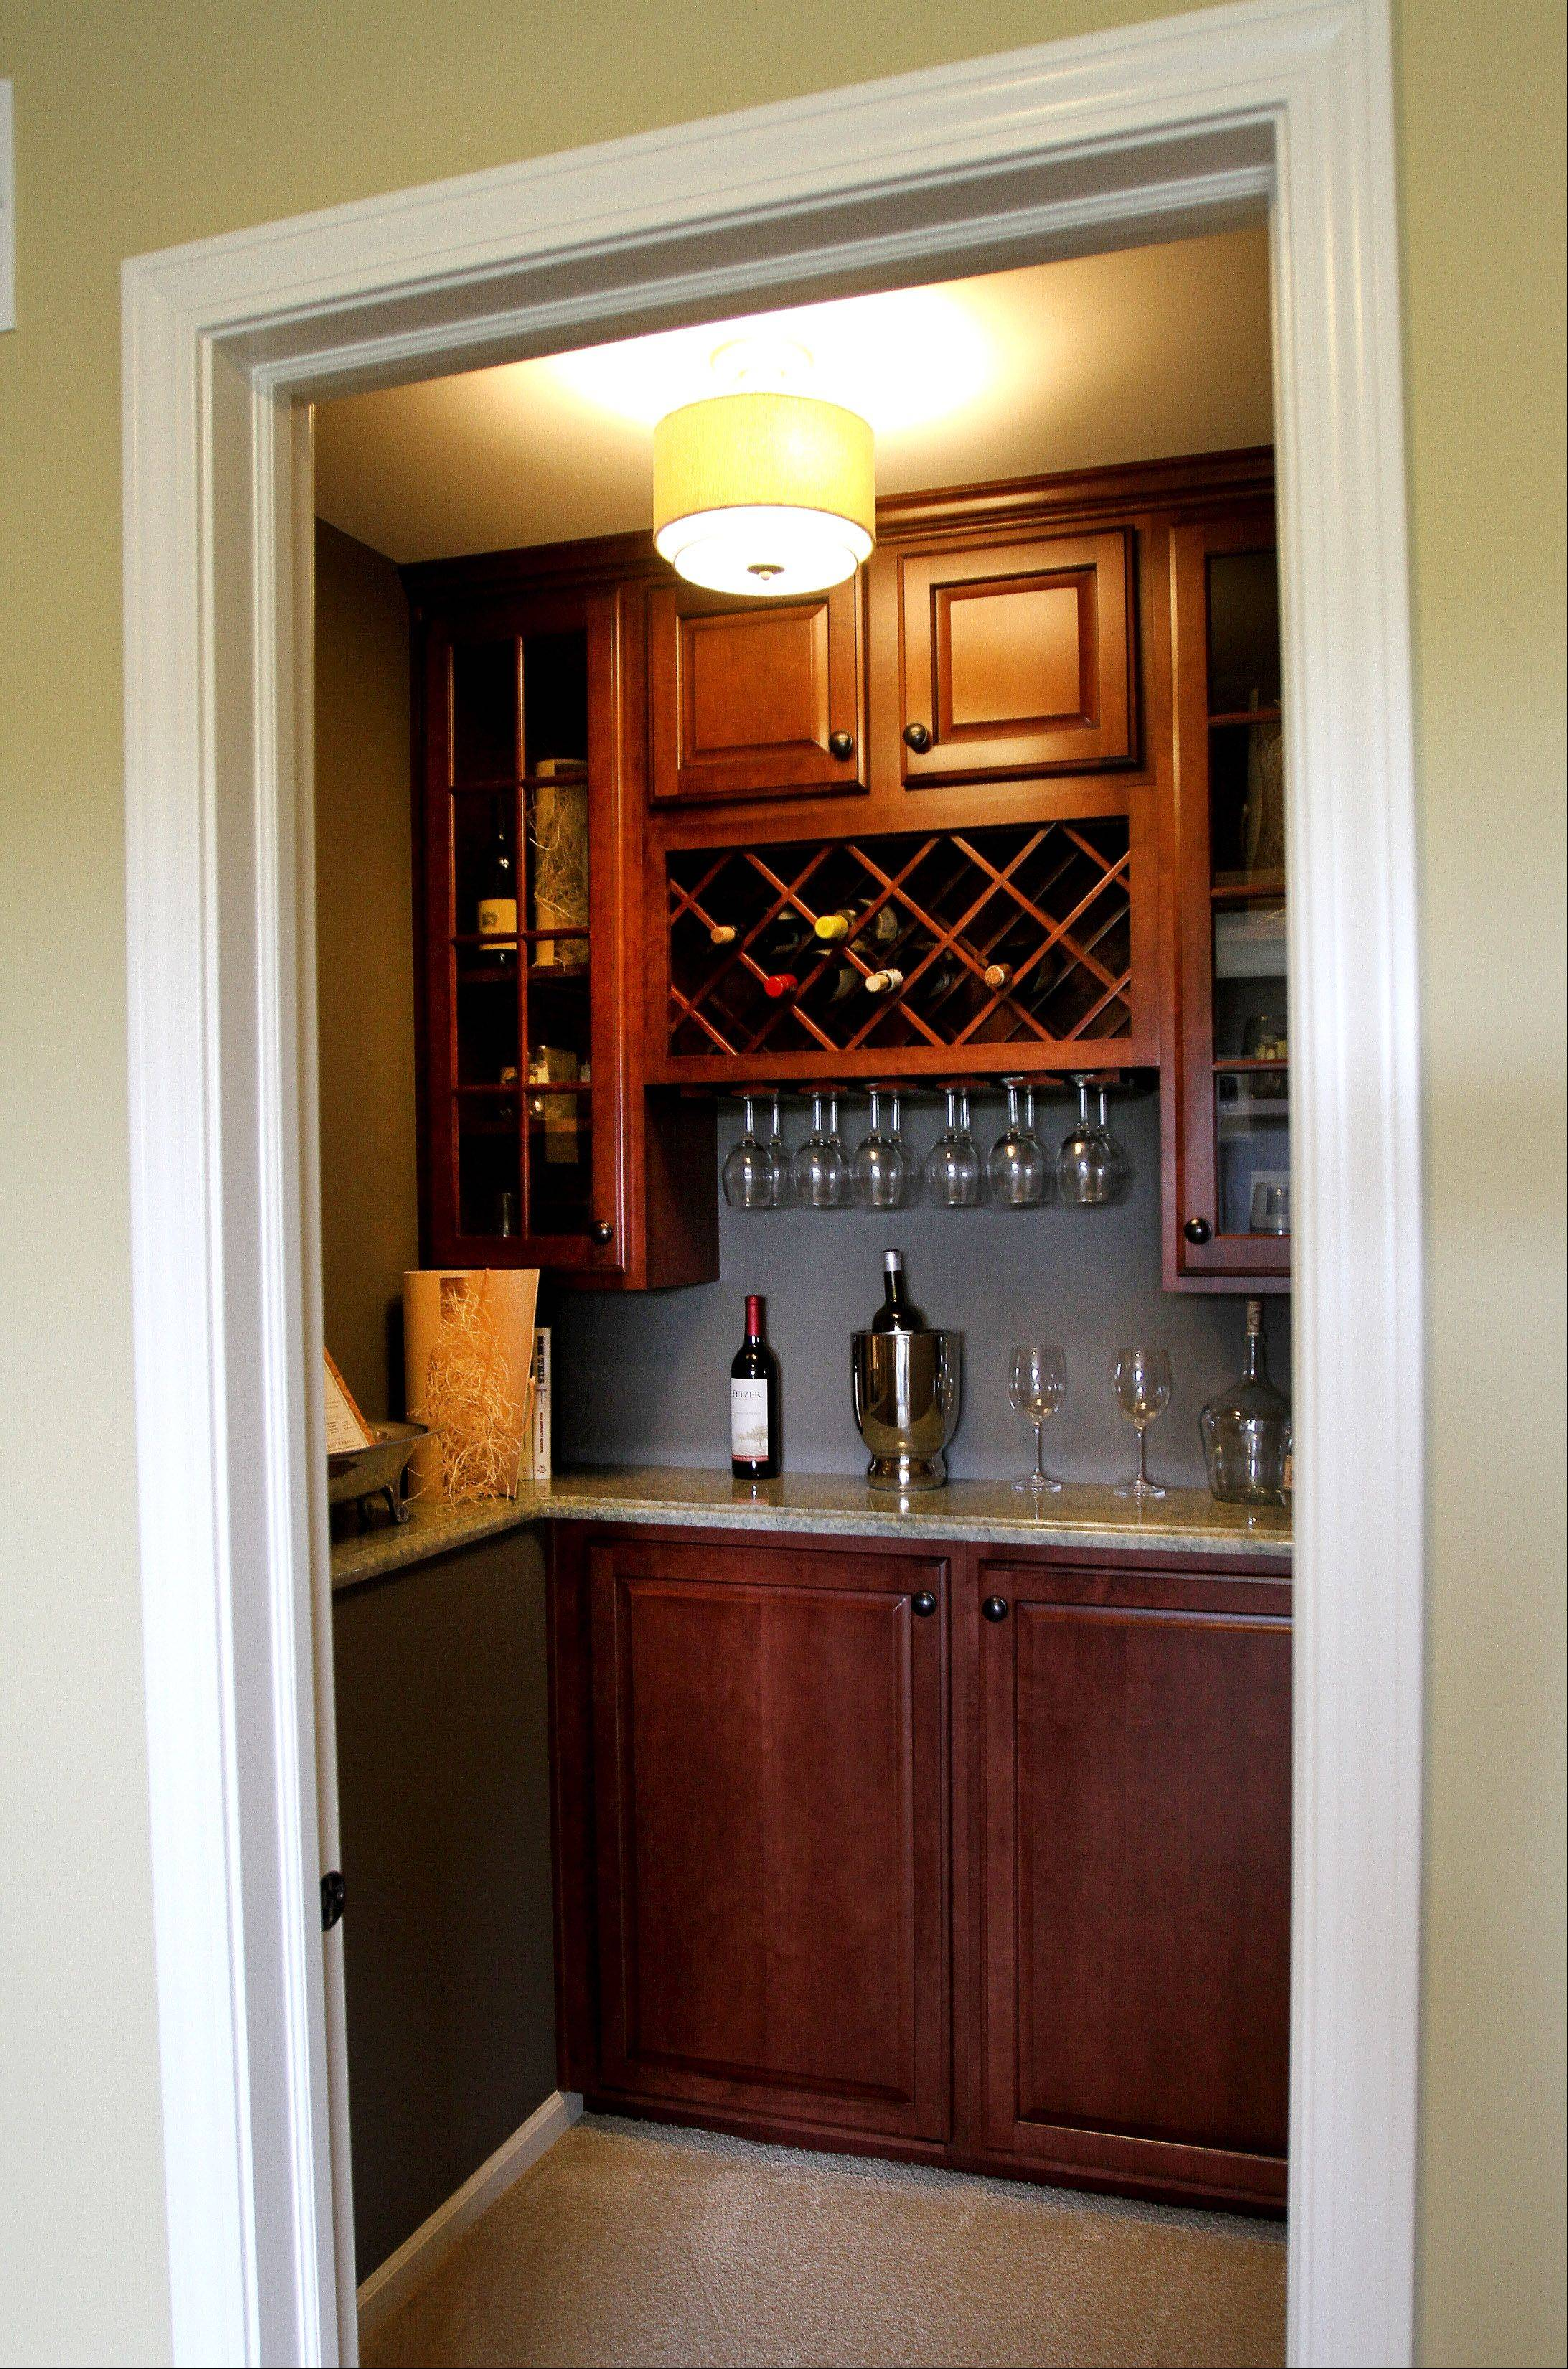 Many open floor plans tuck away a small room than can be used for an office or flex space, to be furnished however a homeowner wants. This wine bar is in a small alcove in the Cardiff model at Easton Park in Carol Stream.